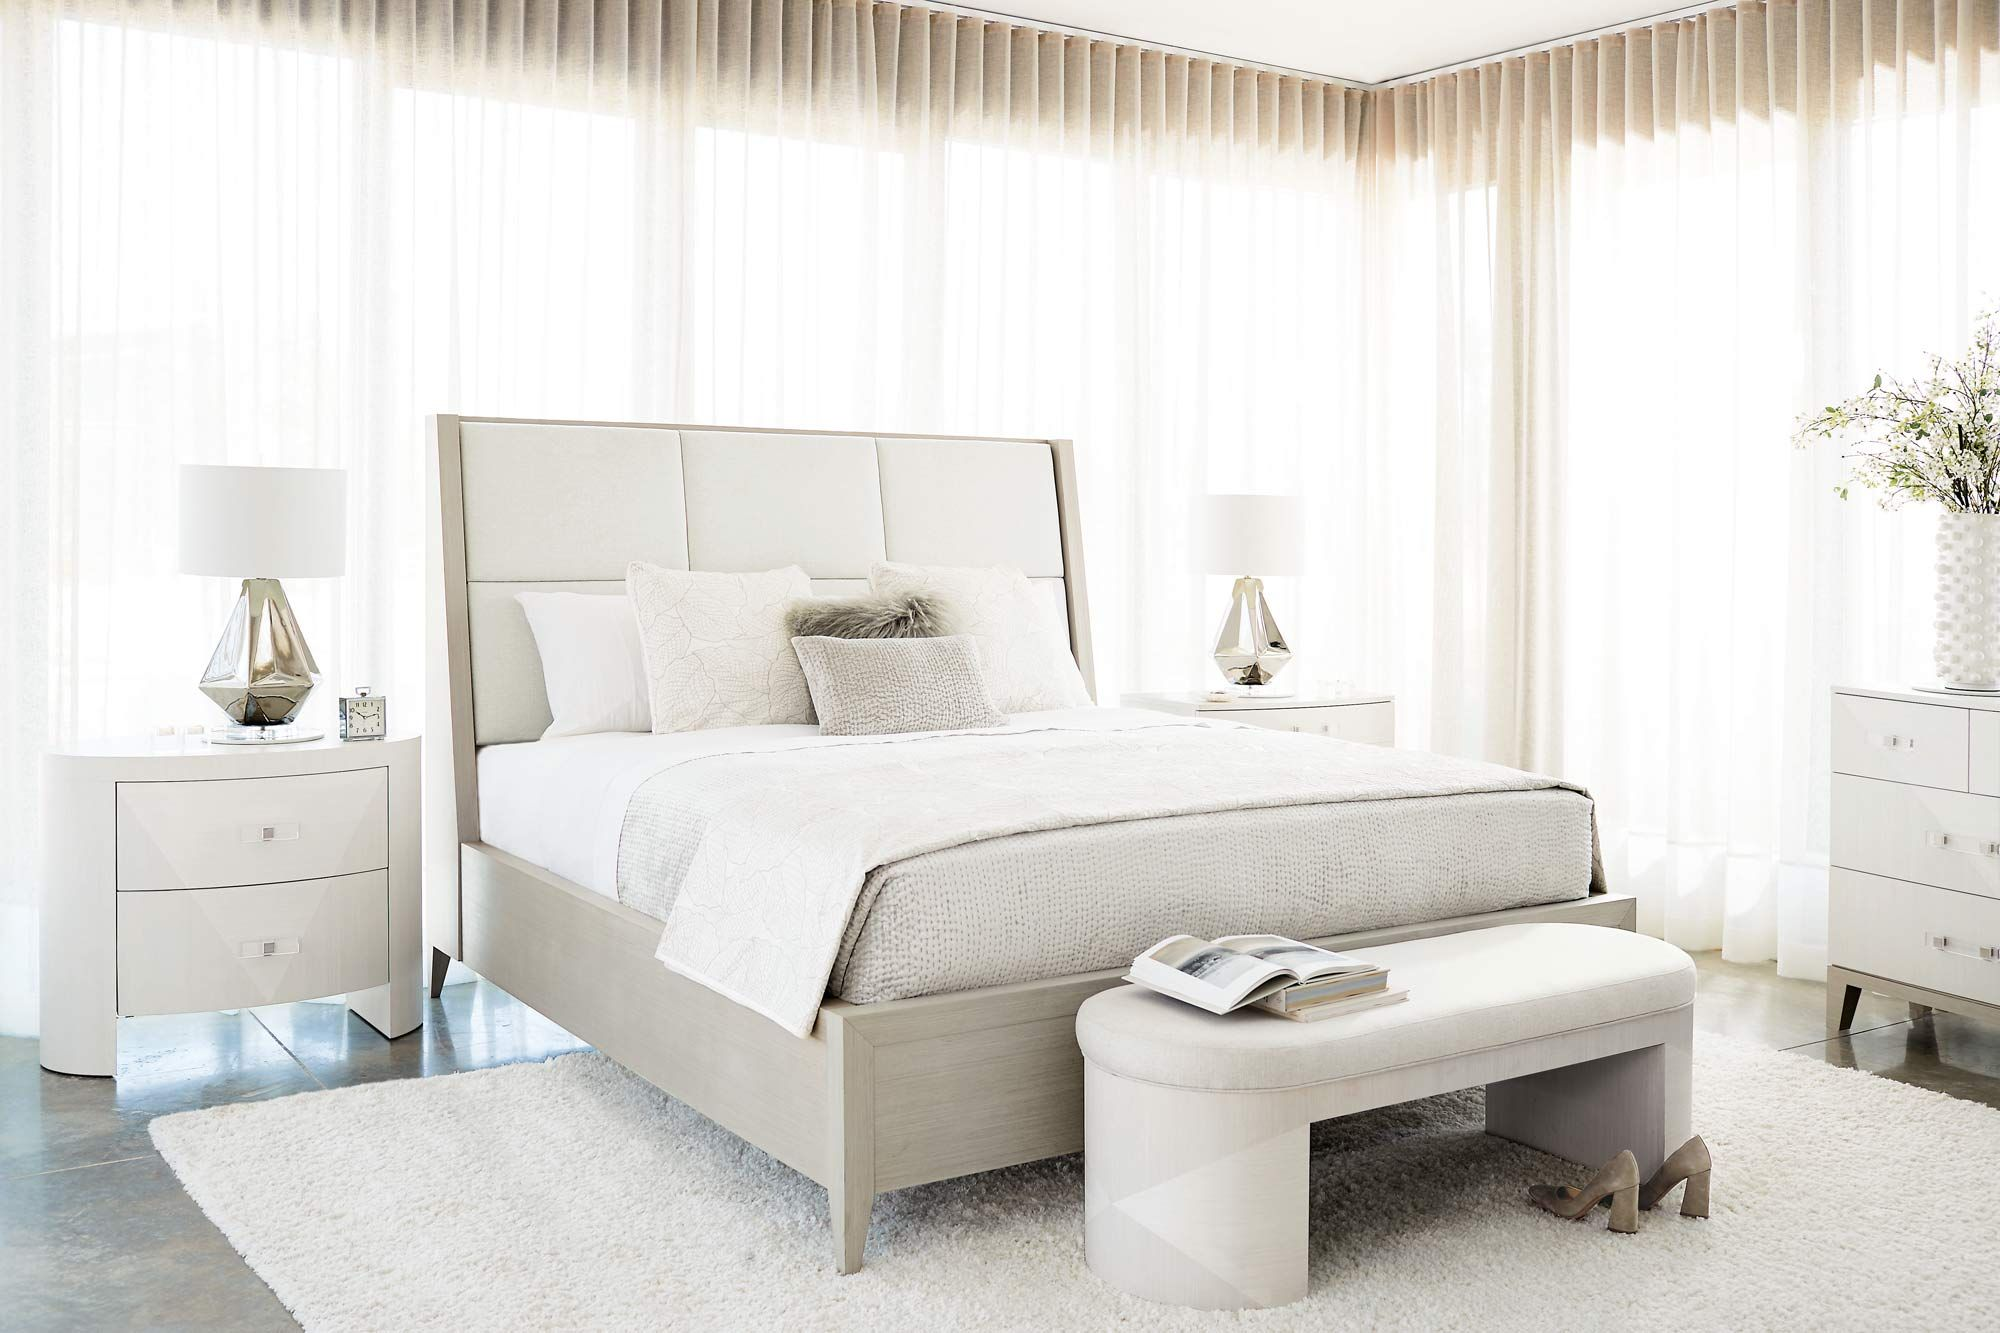 High end luxury bedroom furniture. Axiom bedroom collection